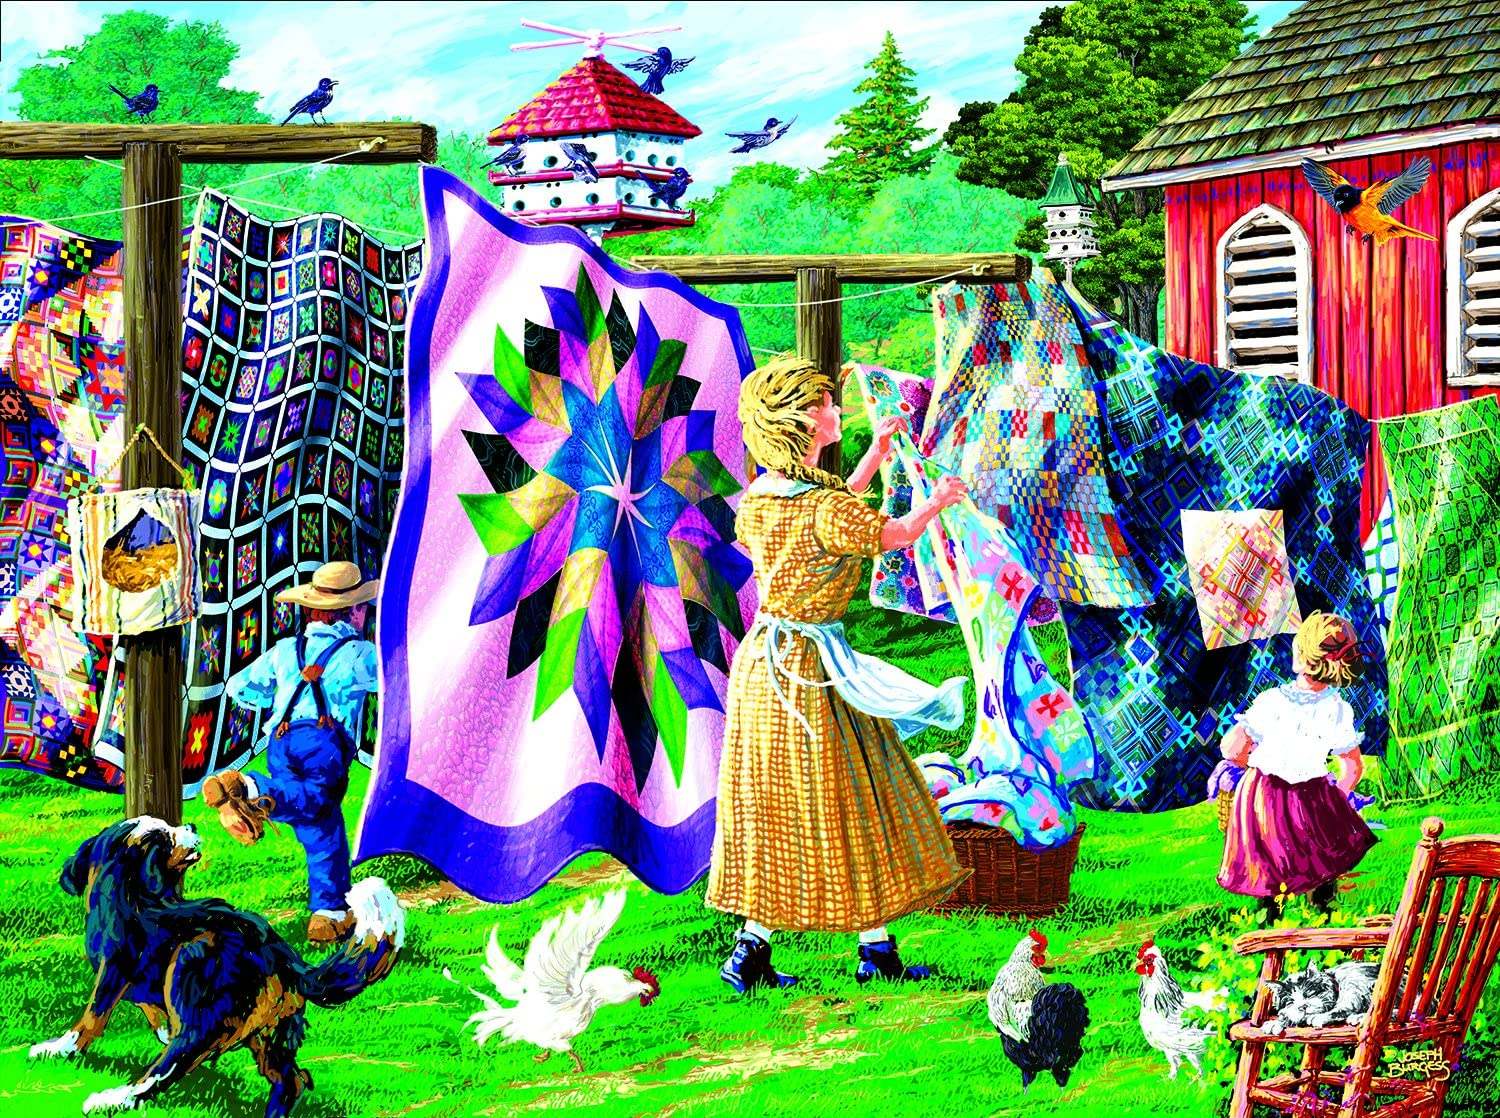 Quilter's Clothesline 1000 Pc Jigsaw Puzzle by SunsOut